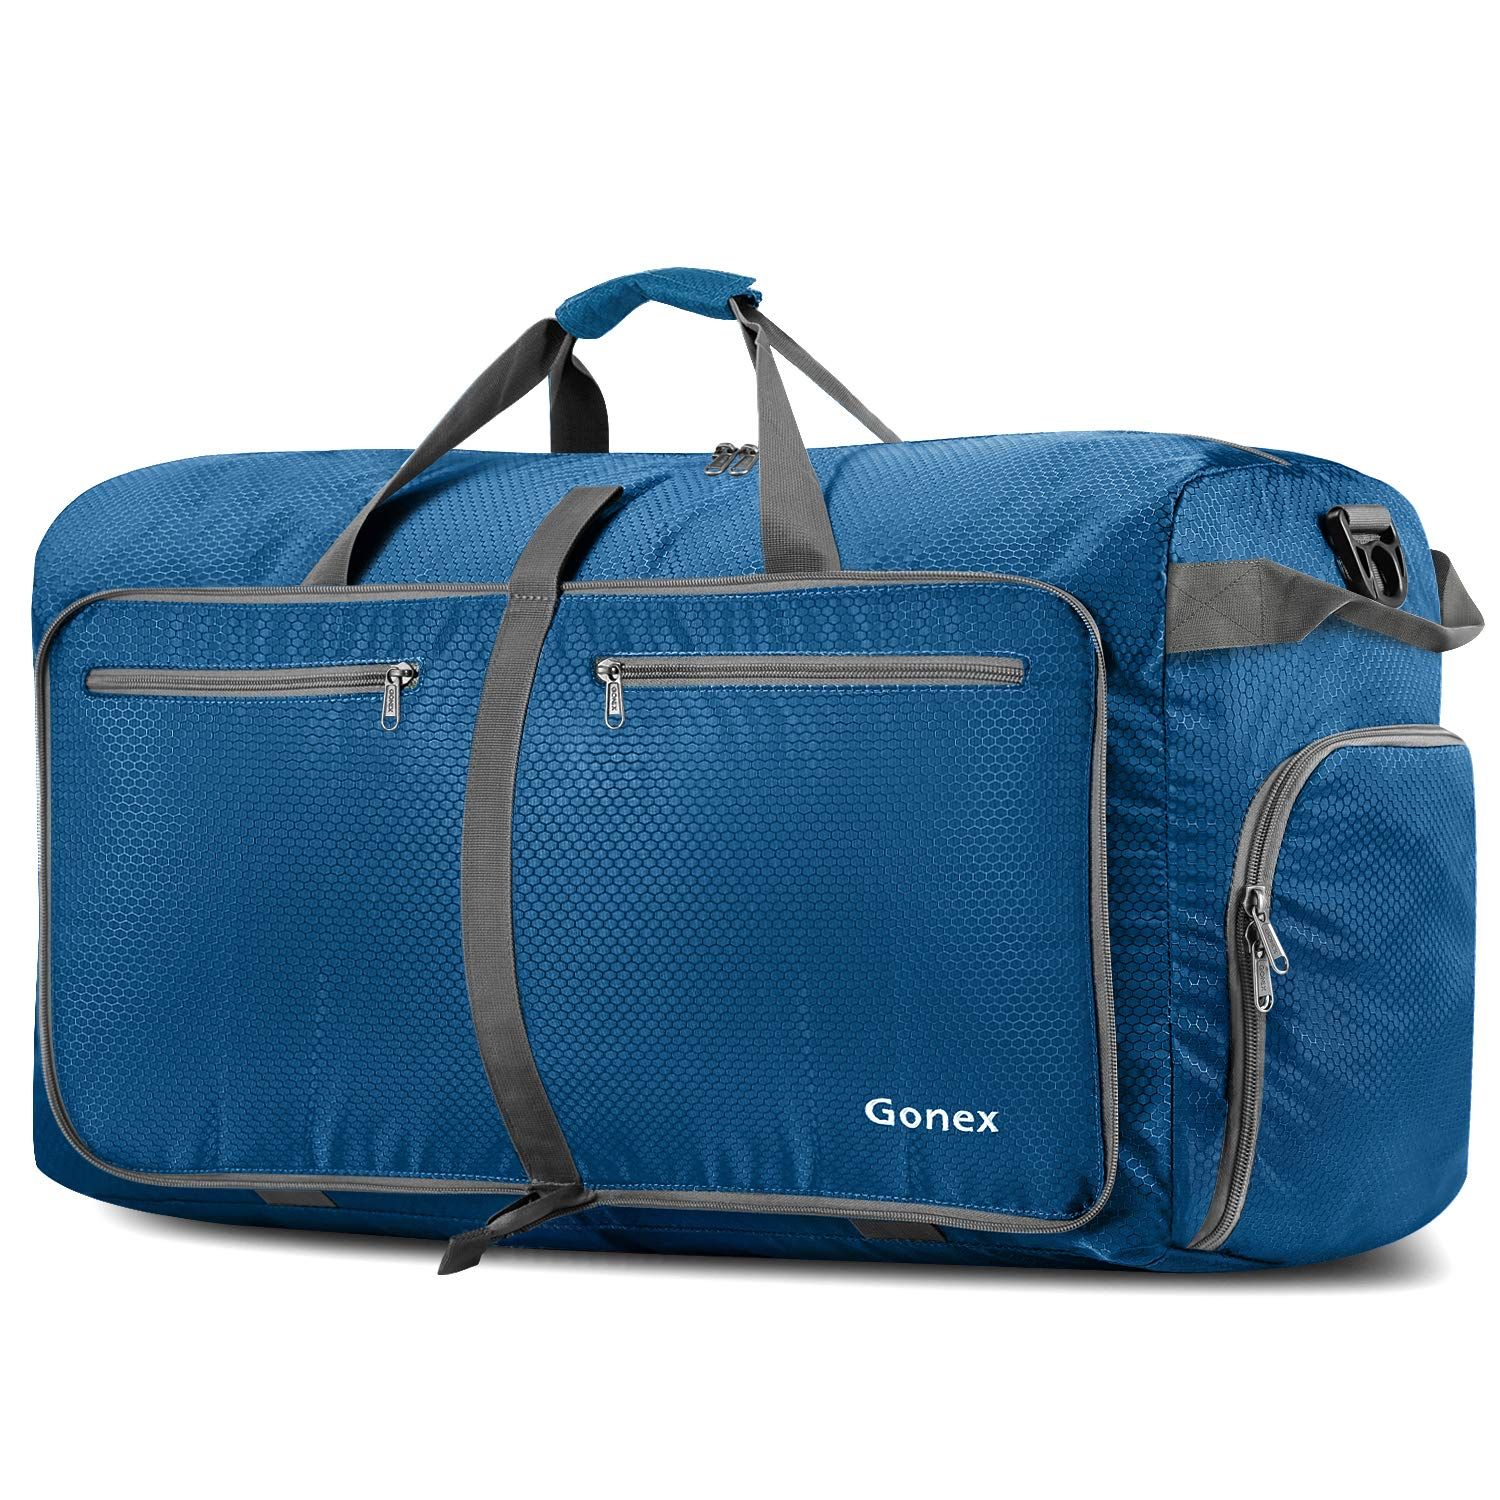 Gonex 100L Foldable Travel Duffel Bag for Luggage Gym Sports, Lightweight Travel Bag with Big Capacity, Water Repellent (Deep Blue)